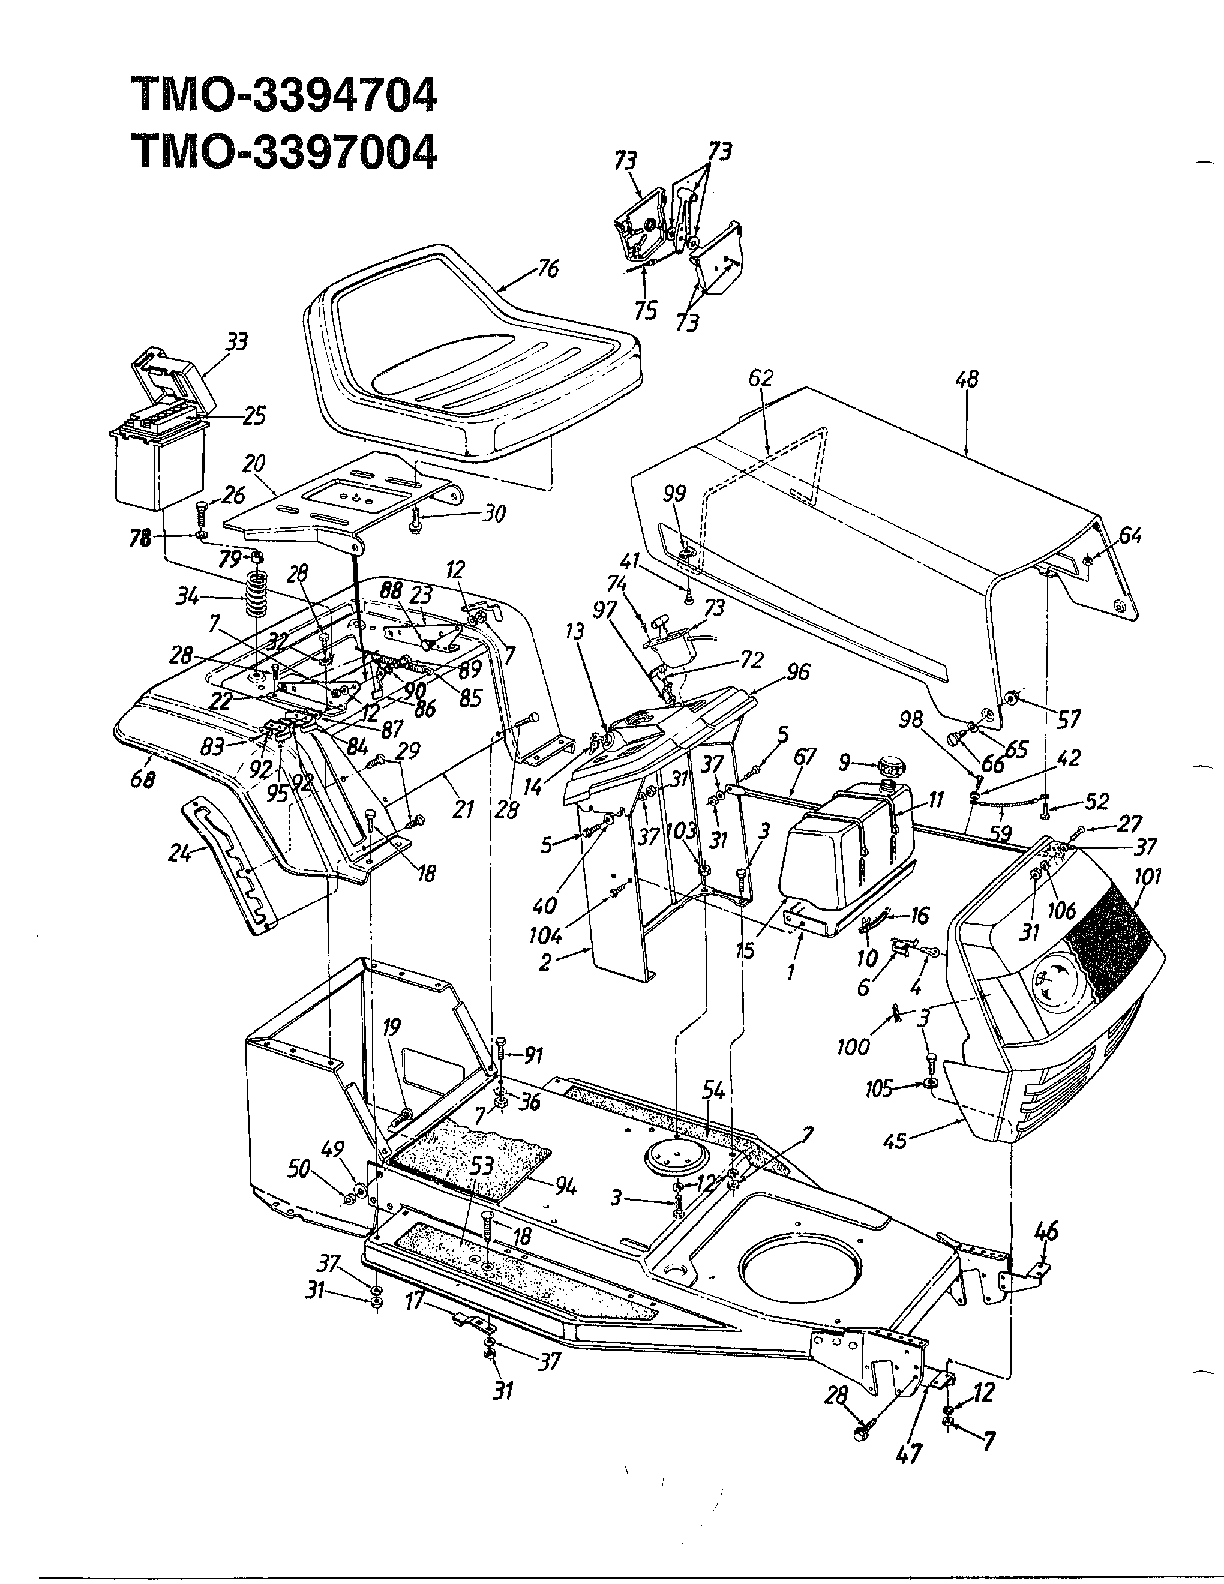 Huskee Riding Lawn Mower Parts Diagram, Huskee, Free